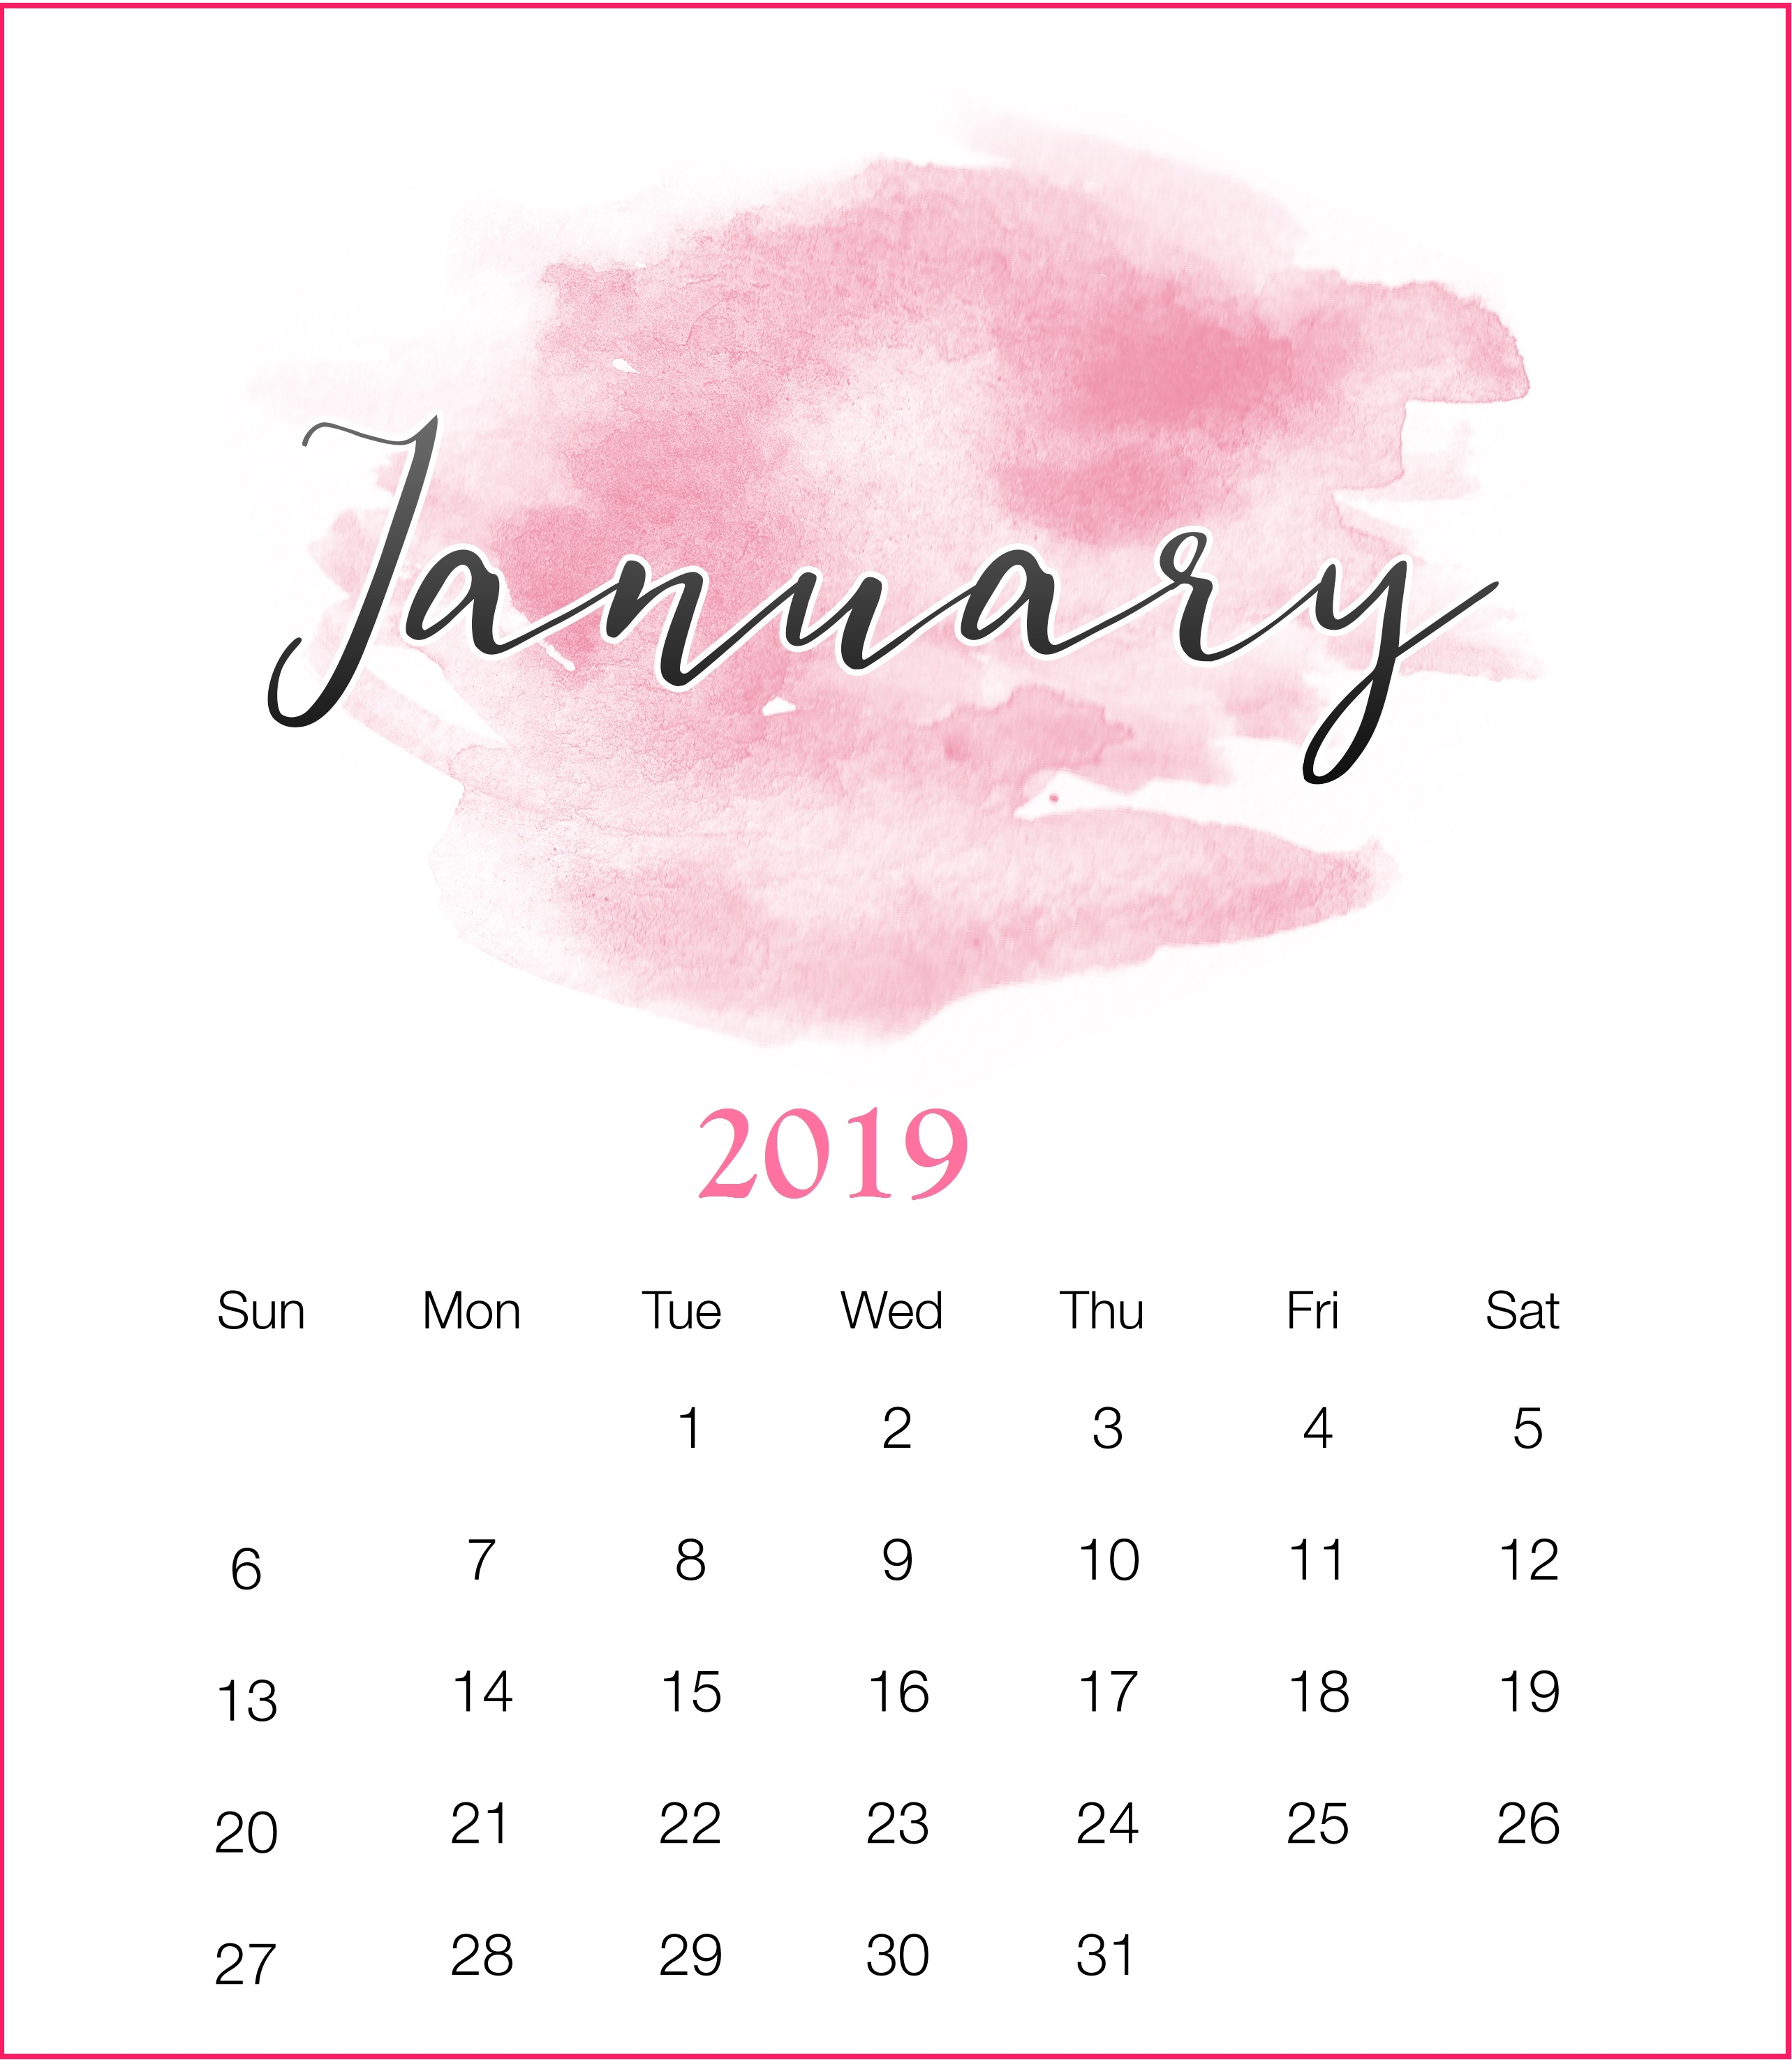 january 2019 calendar templates all about january calendar::January 2019 Calendar with Holidays Printable